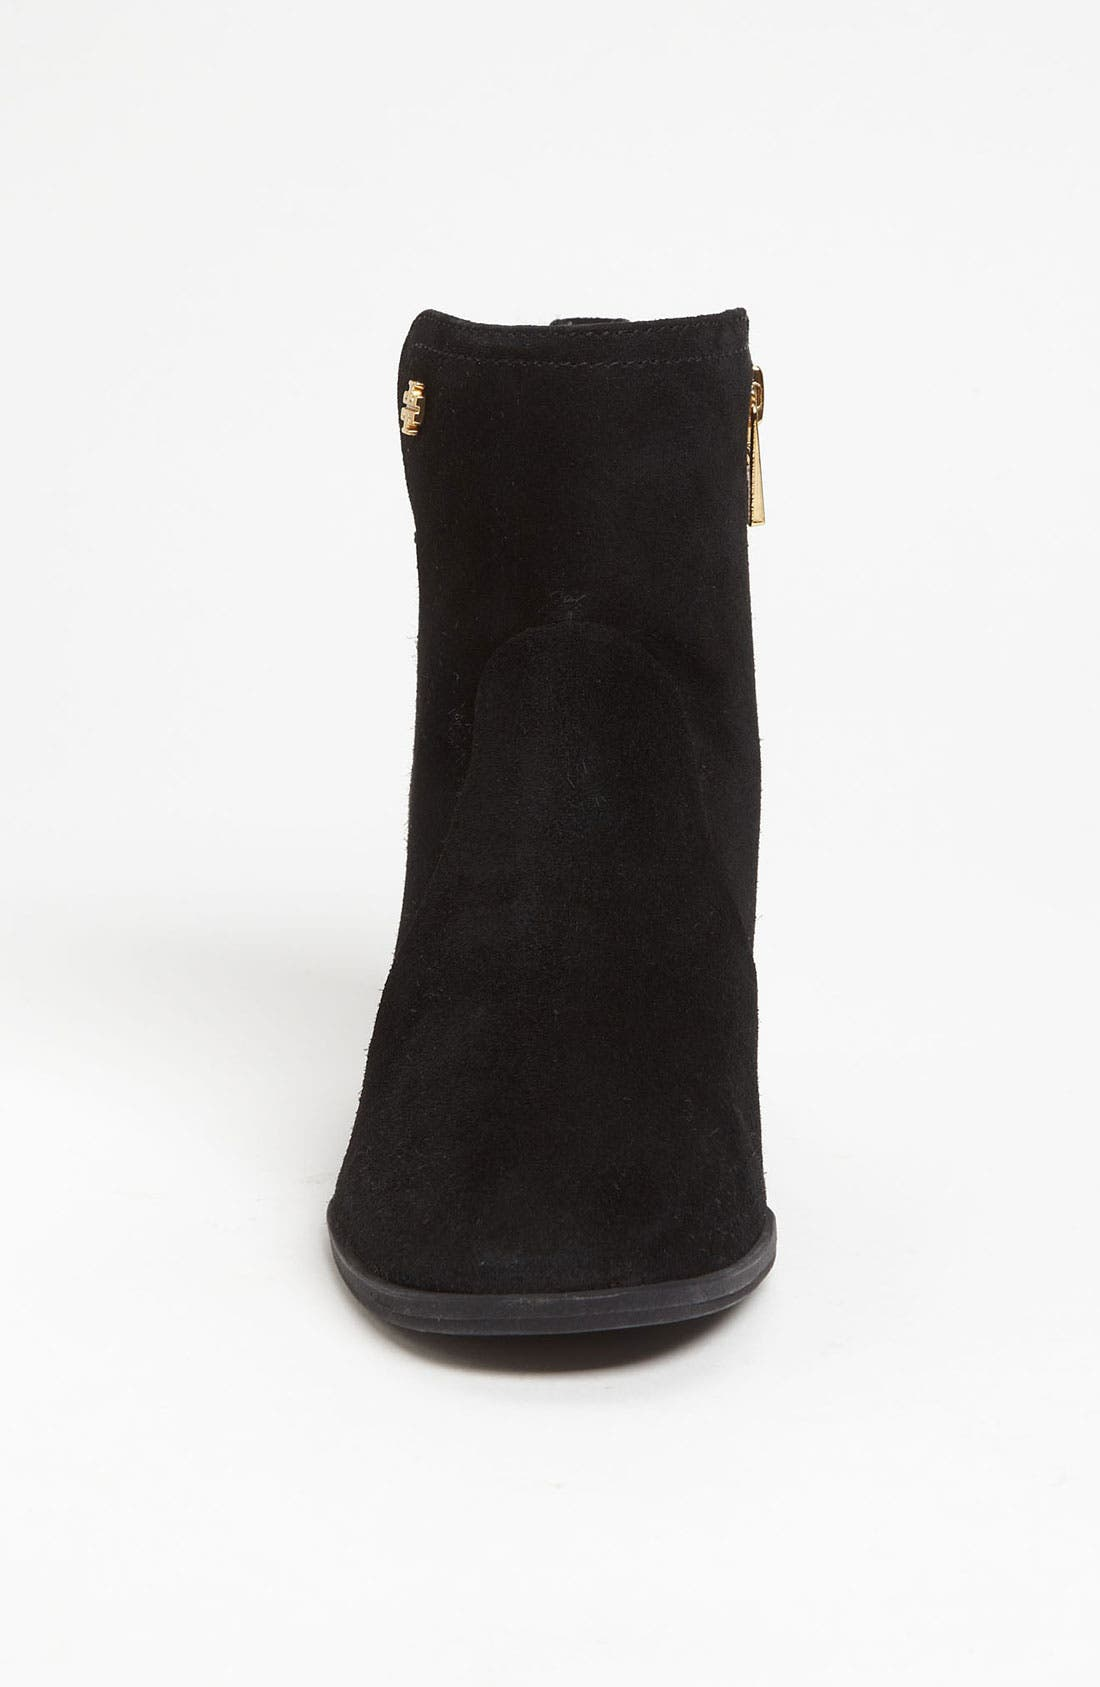 Alternate Image 3  - Tory Burch 'Sabe' Bootie